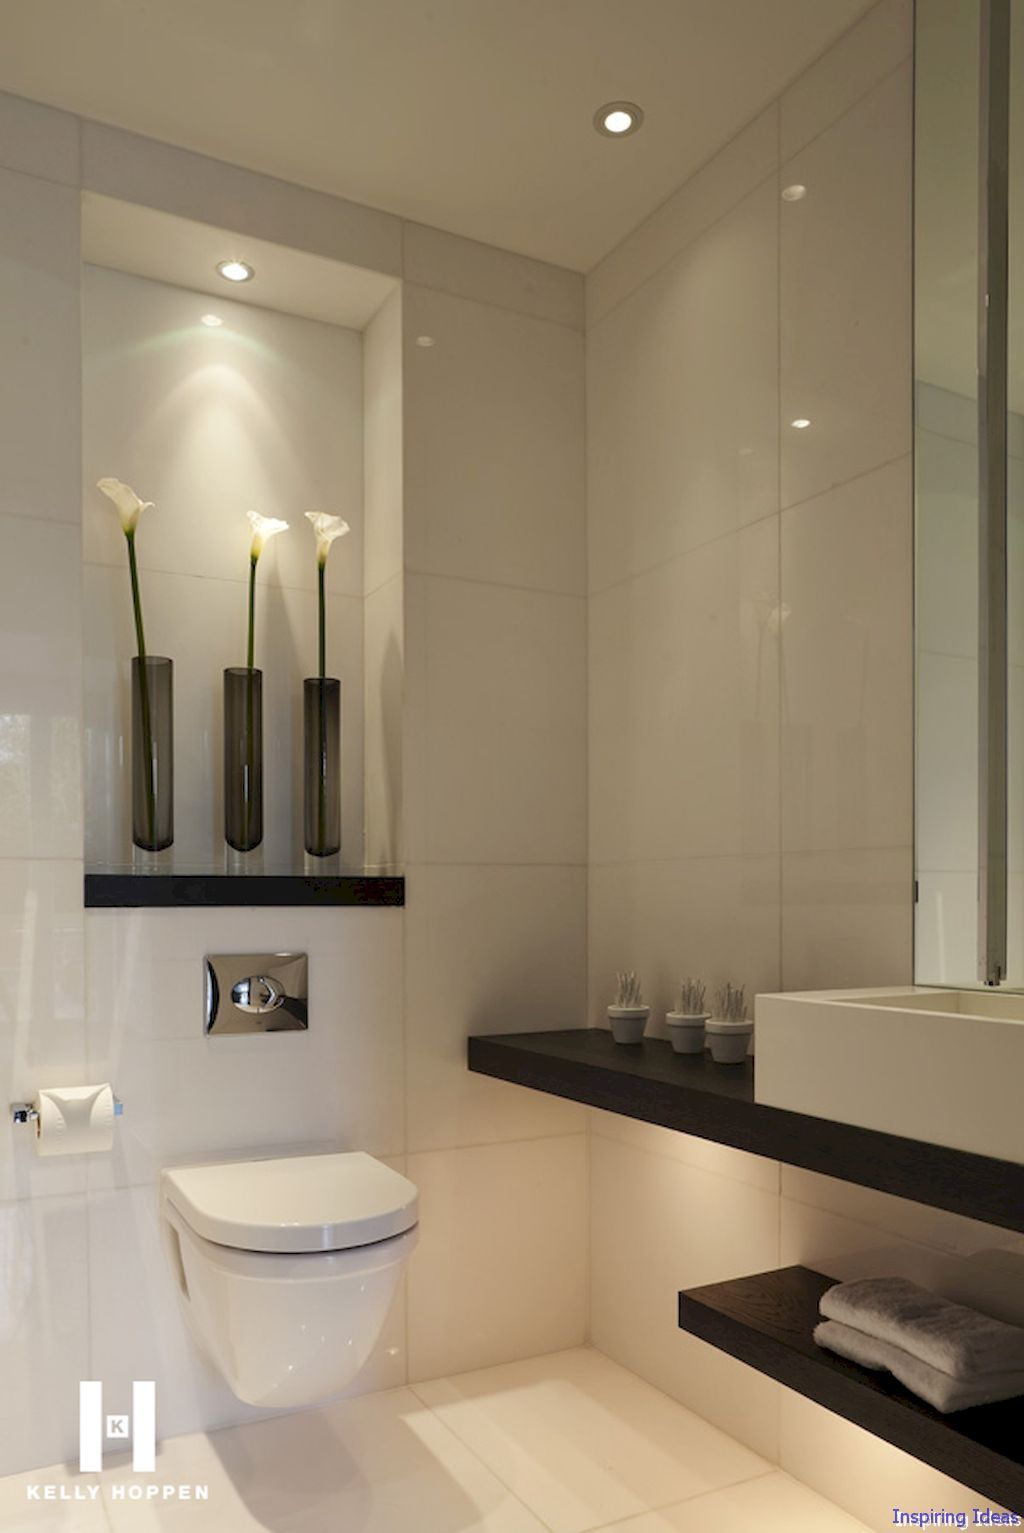 45 Clever Small Bathroom Design Ideas  Small Bathroom Designs Inspiration Clever Small Bathroom Designs Decorating Inspiration